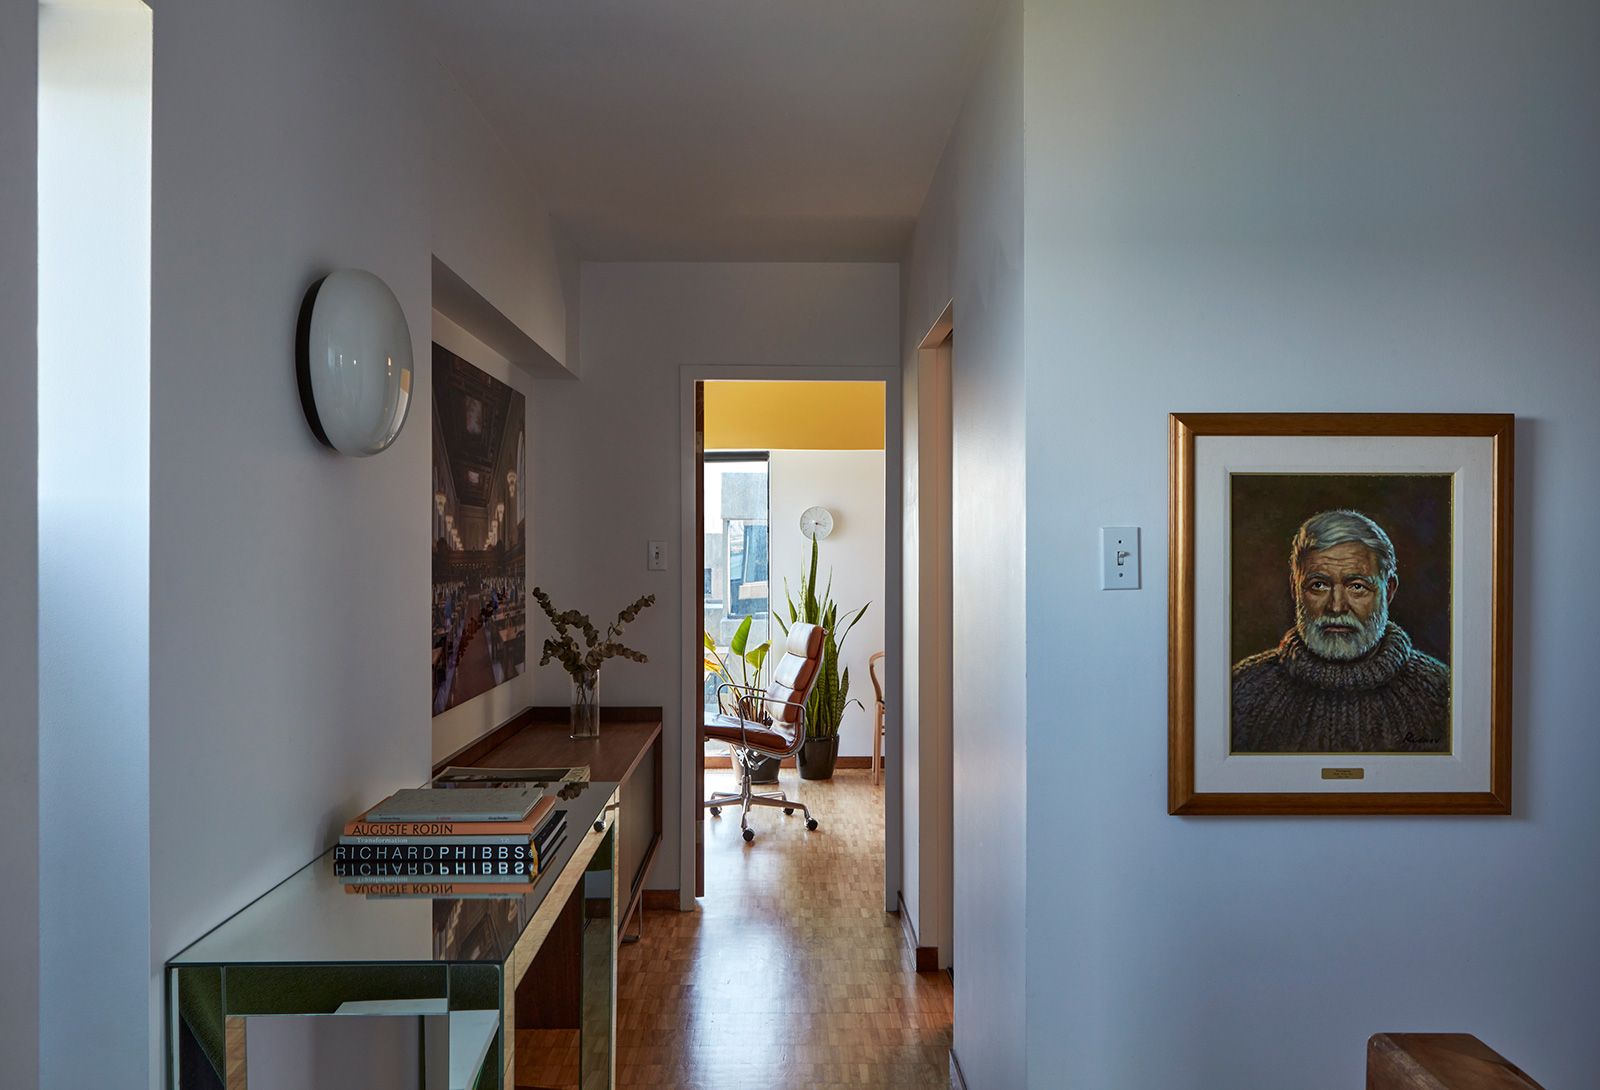 The view through the hallway to the study